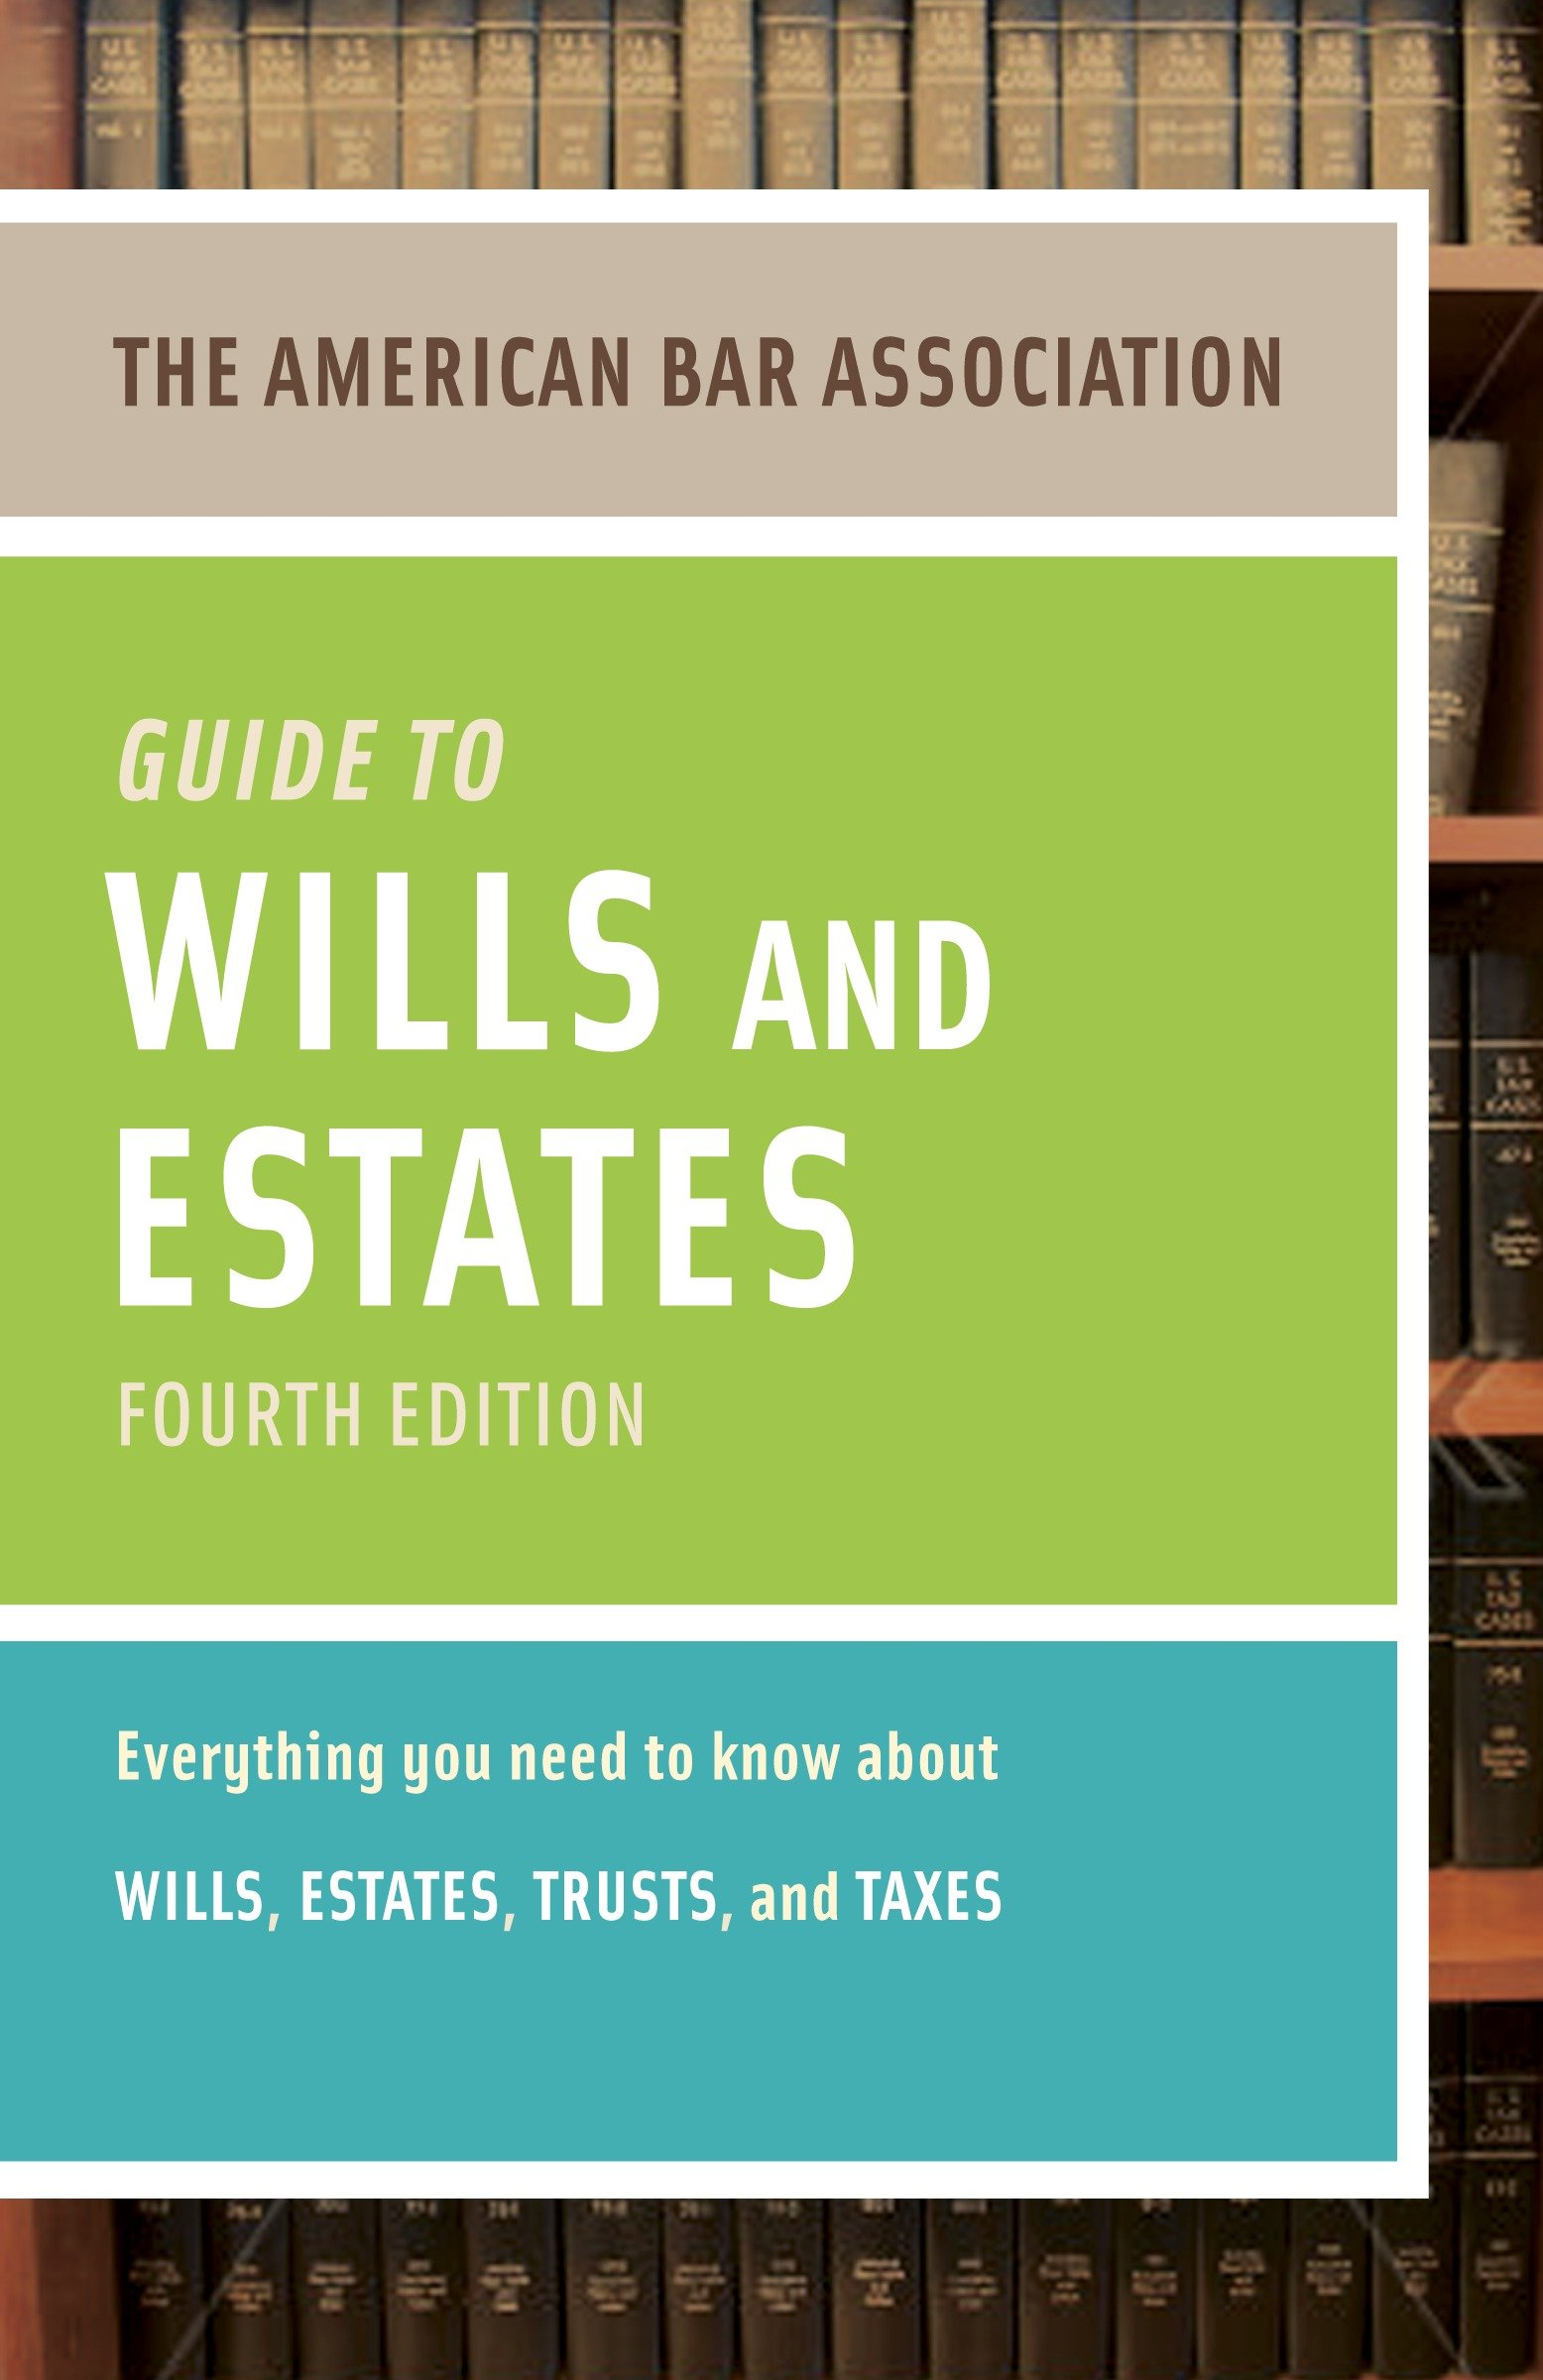 American Bar Association Guide to Wills and Estates, Fourth Edition An Interactive Guide to Preparing Your Wills, Estates, Trusts, and Taxes